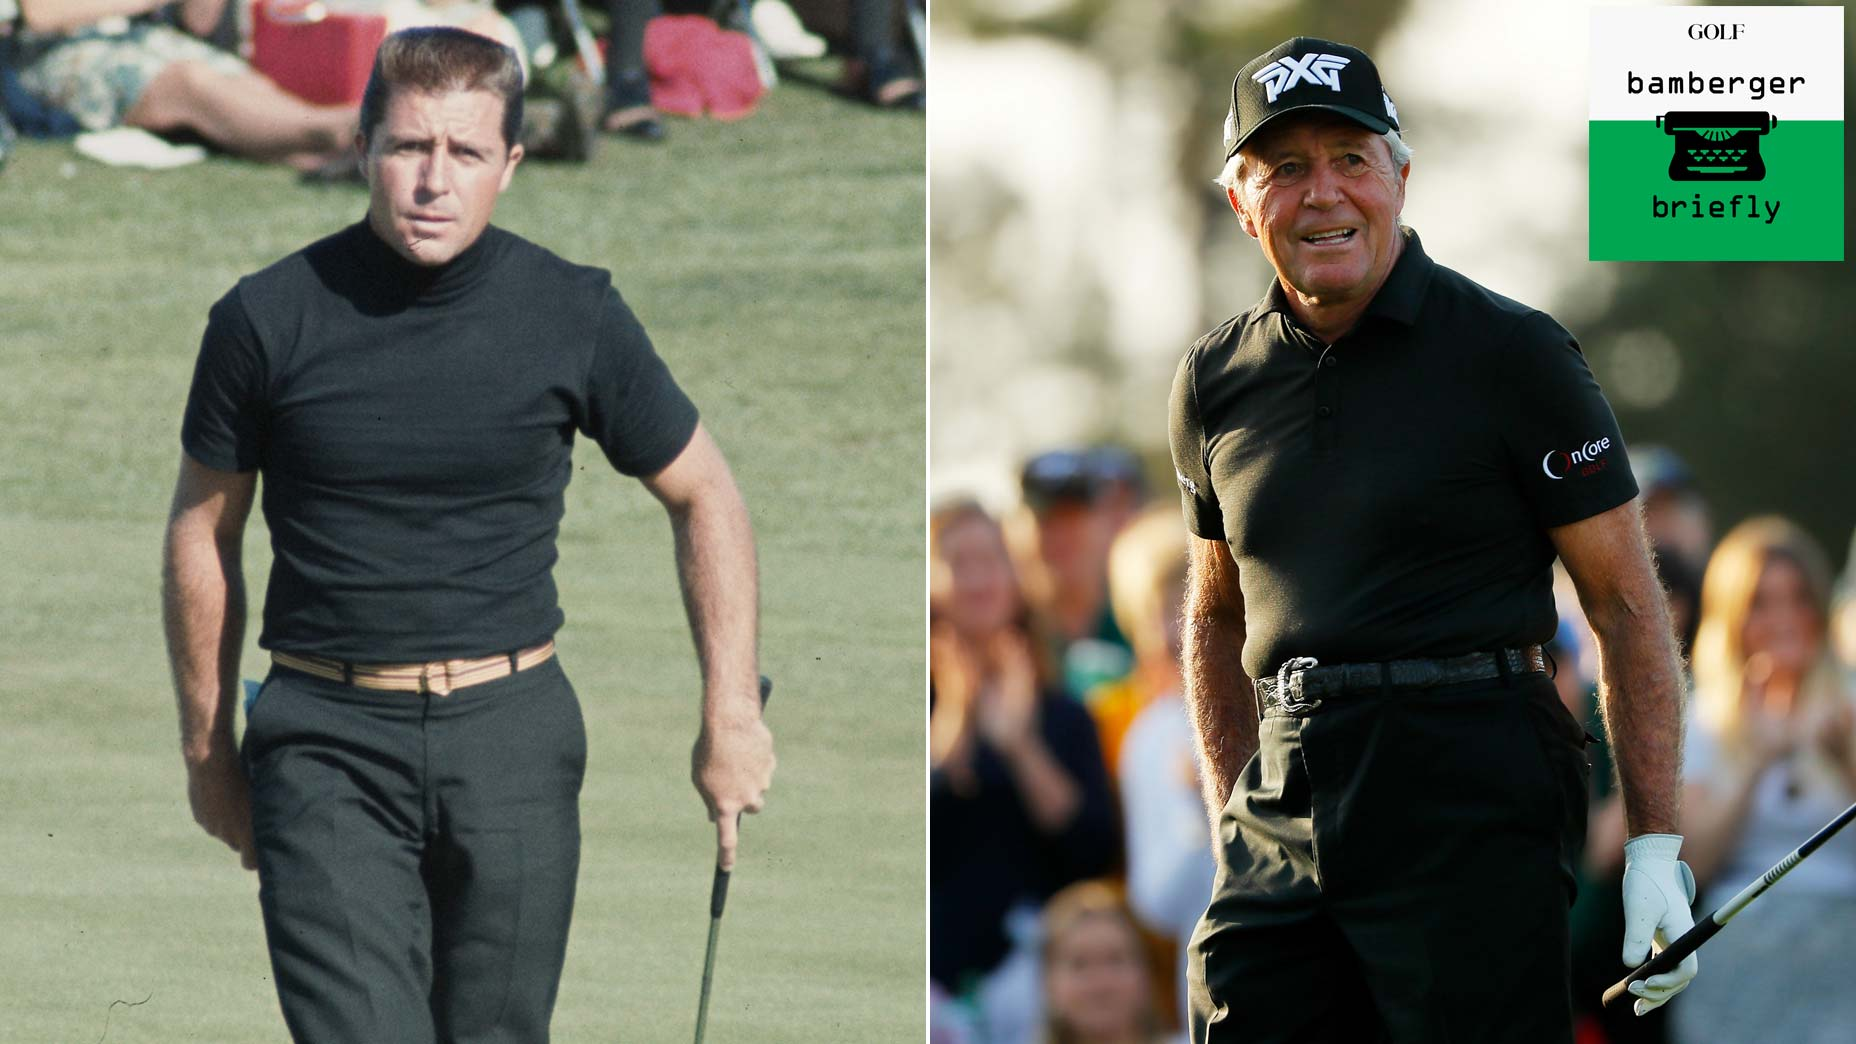 The evolution of Gary Player, and what we can learn from it